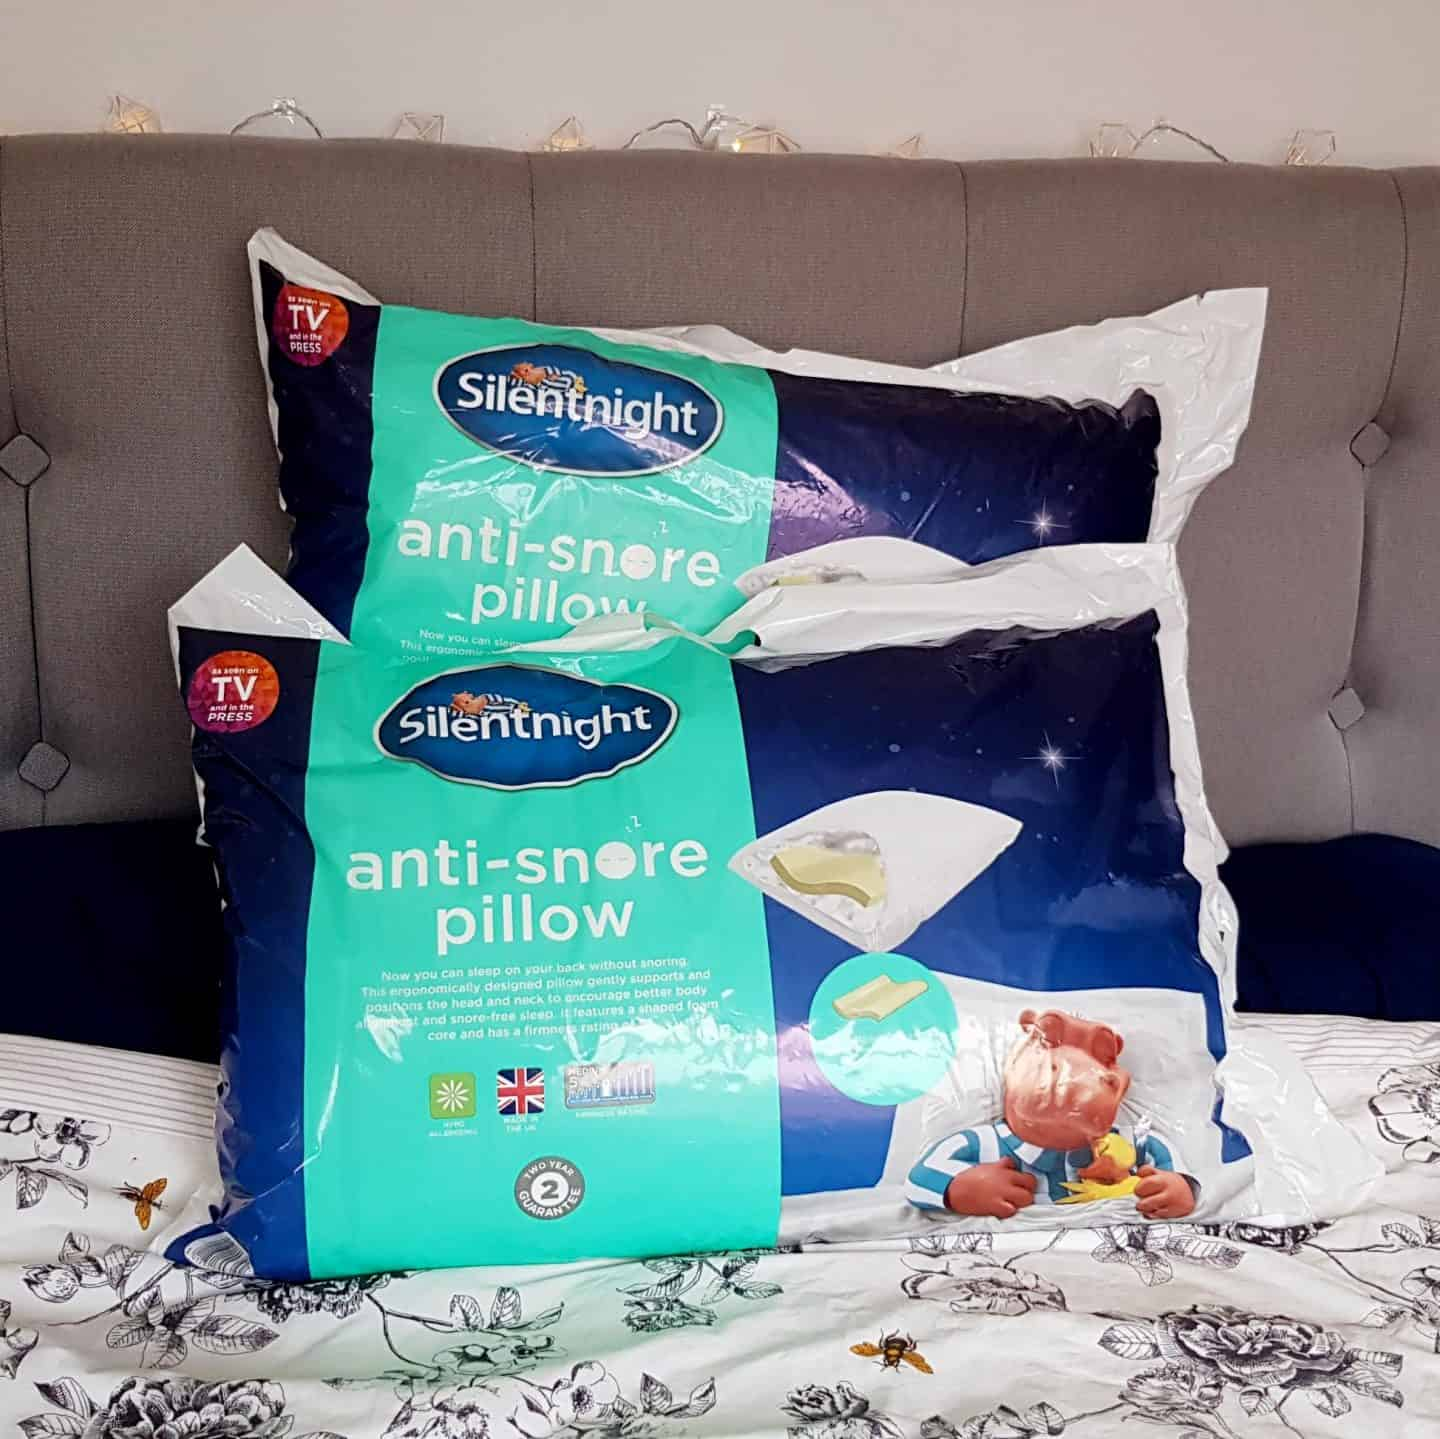 Silentnight Anti Snore Pillow To Stop Snoring Review